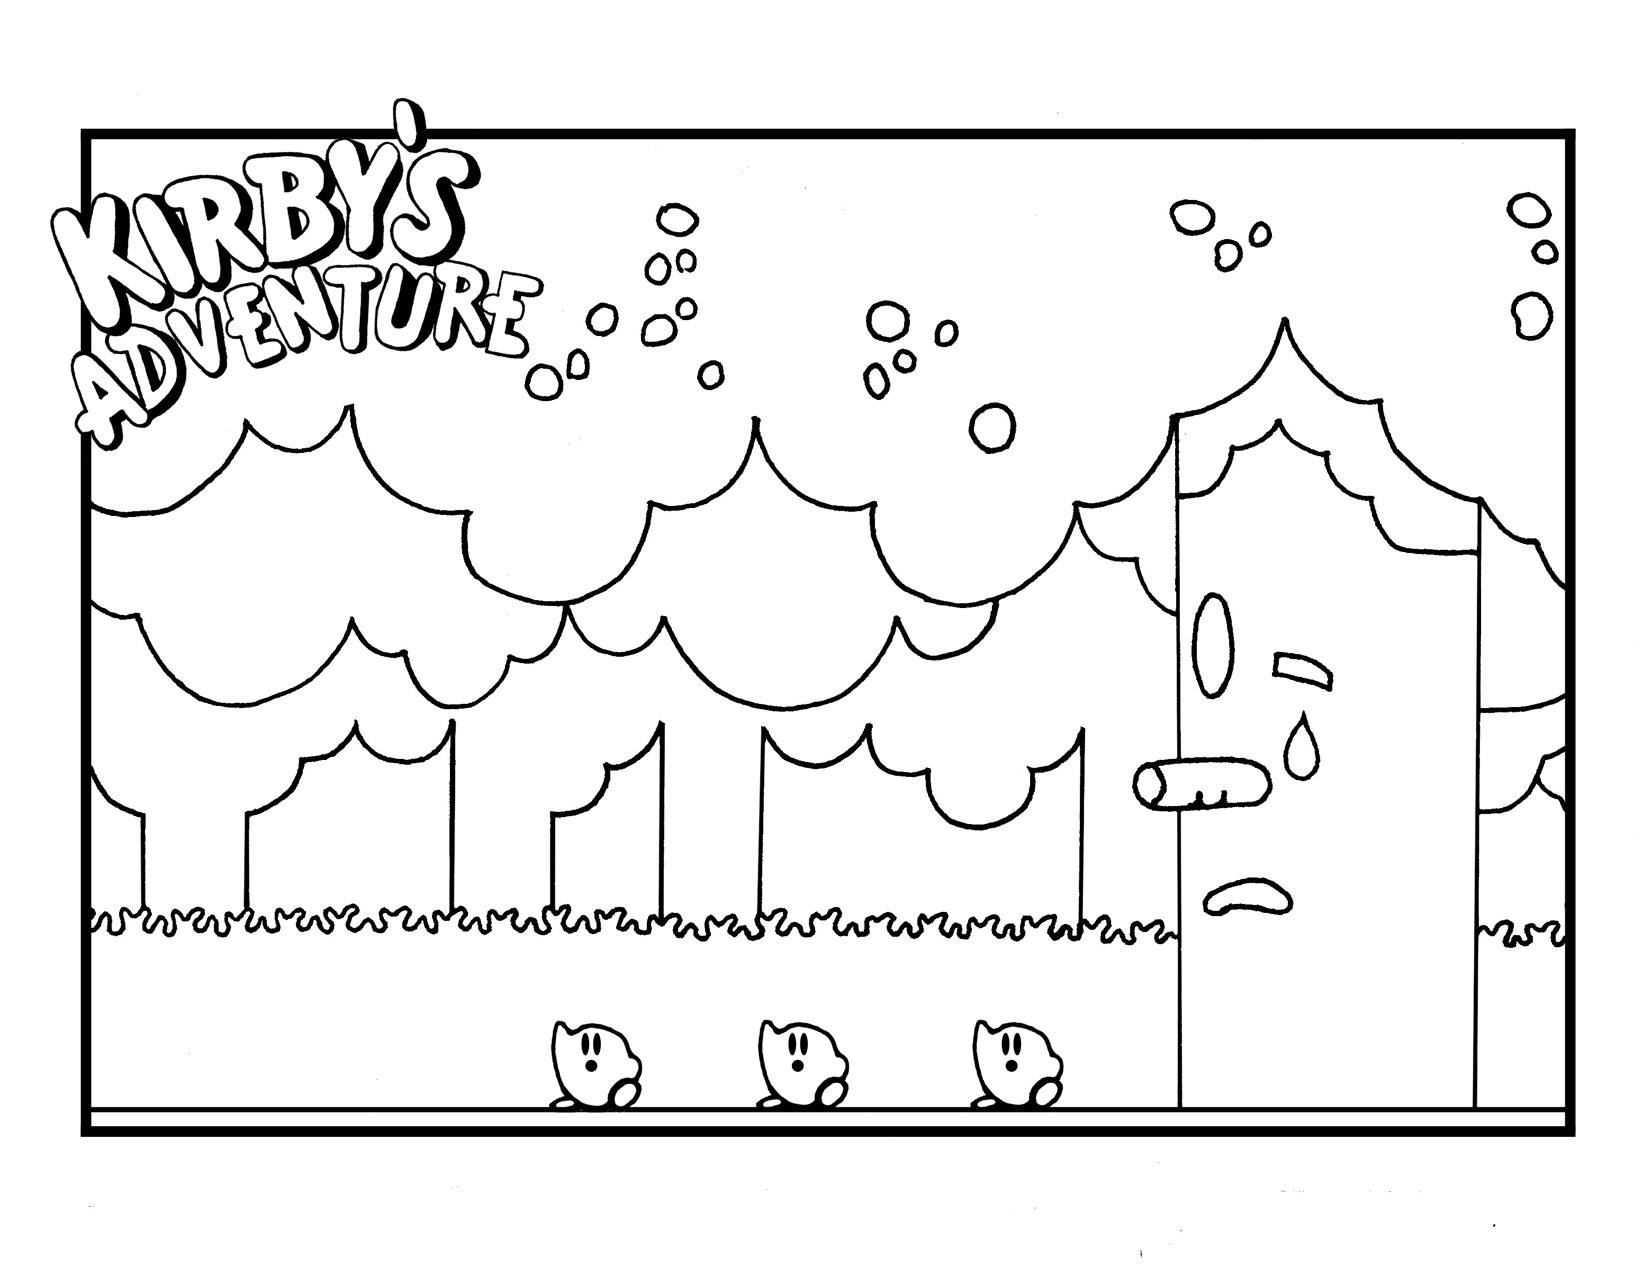 Adventure Kirby Coloring Pages Free Printable Coloring Pages For